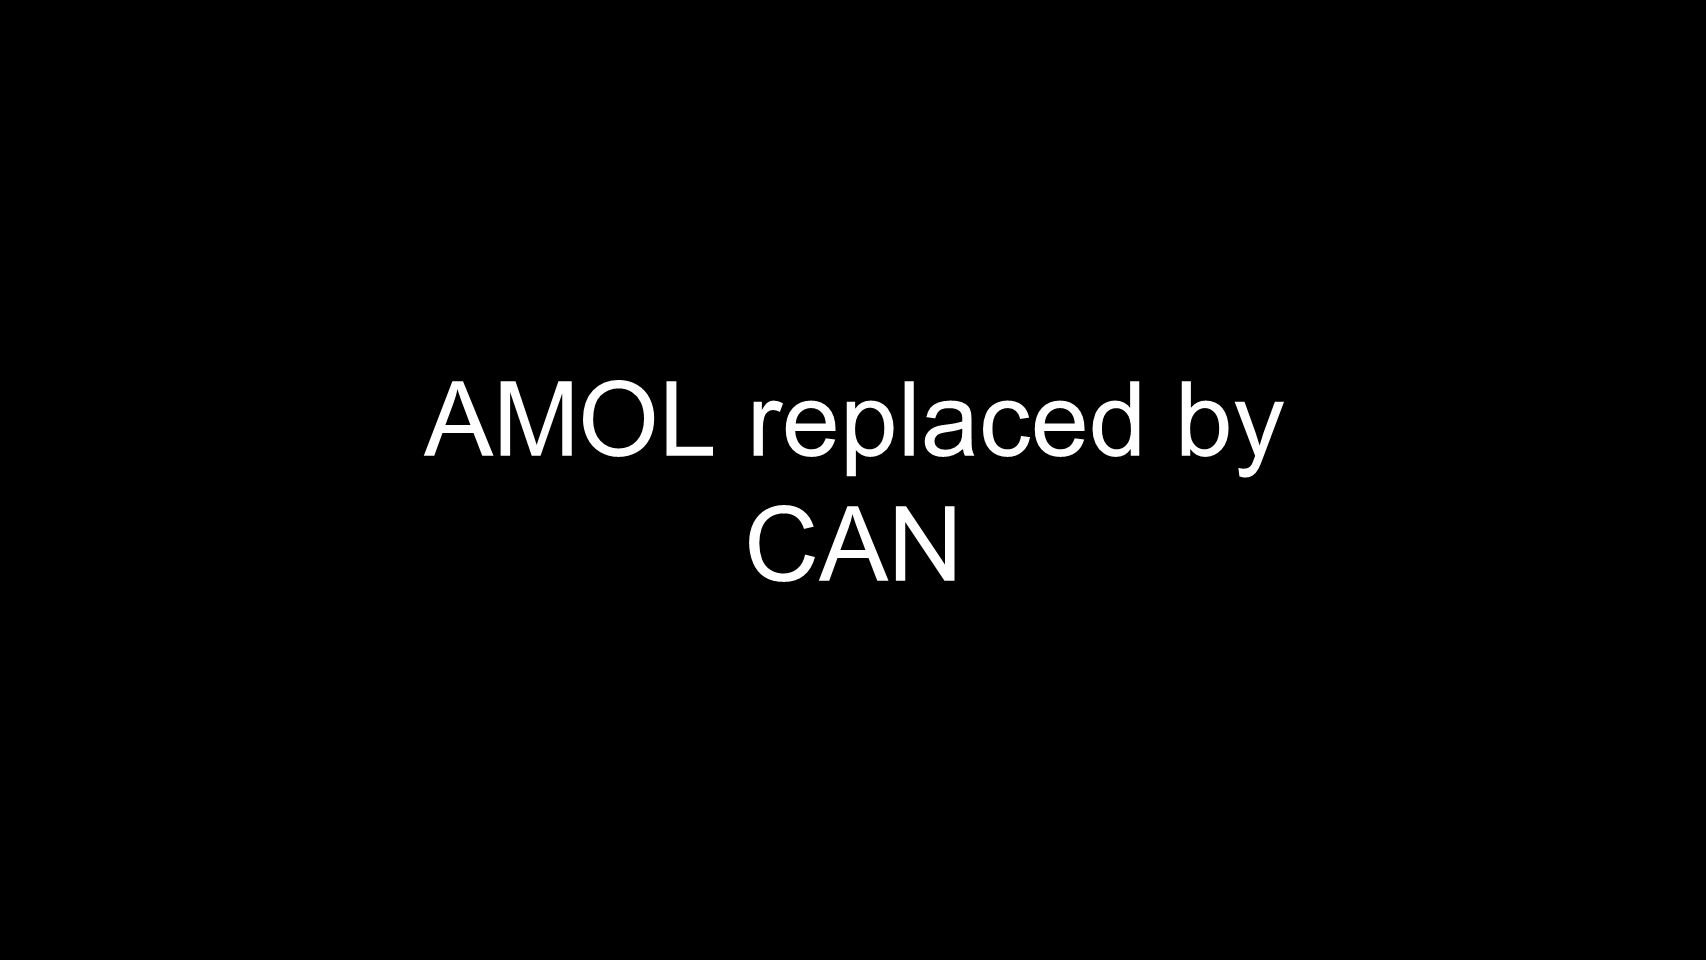 AMOL replaced by CAN